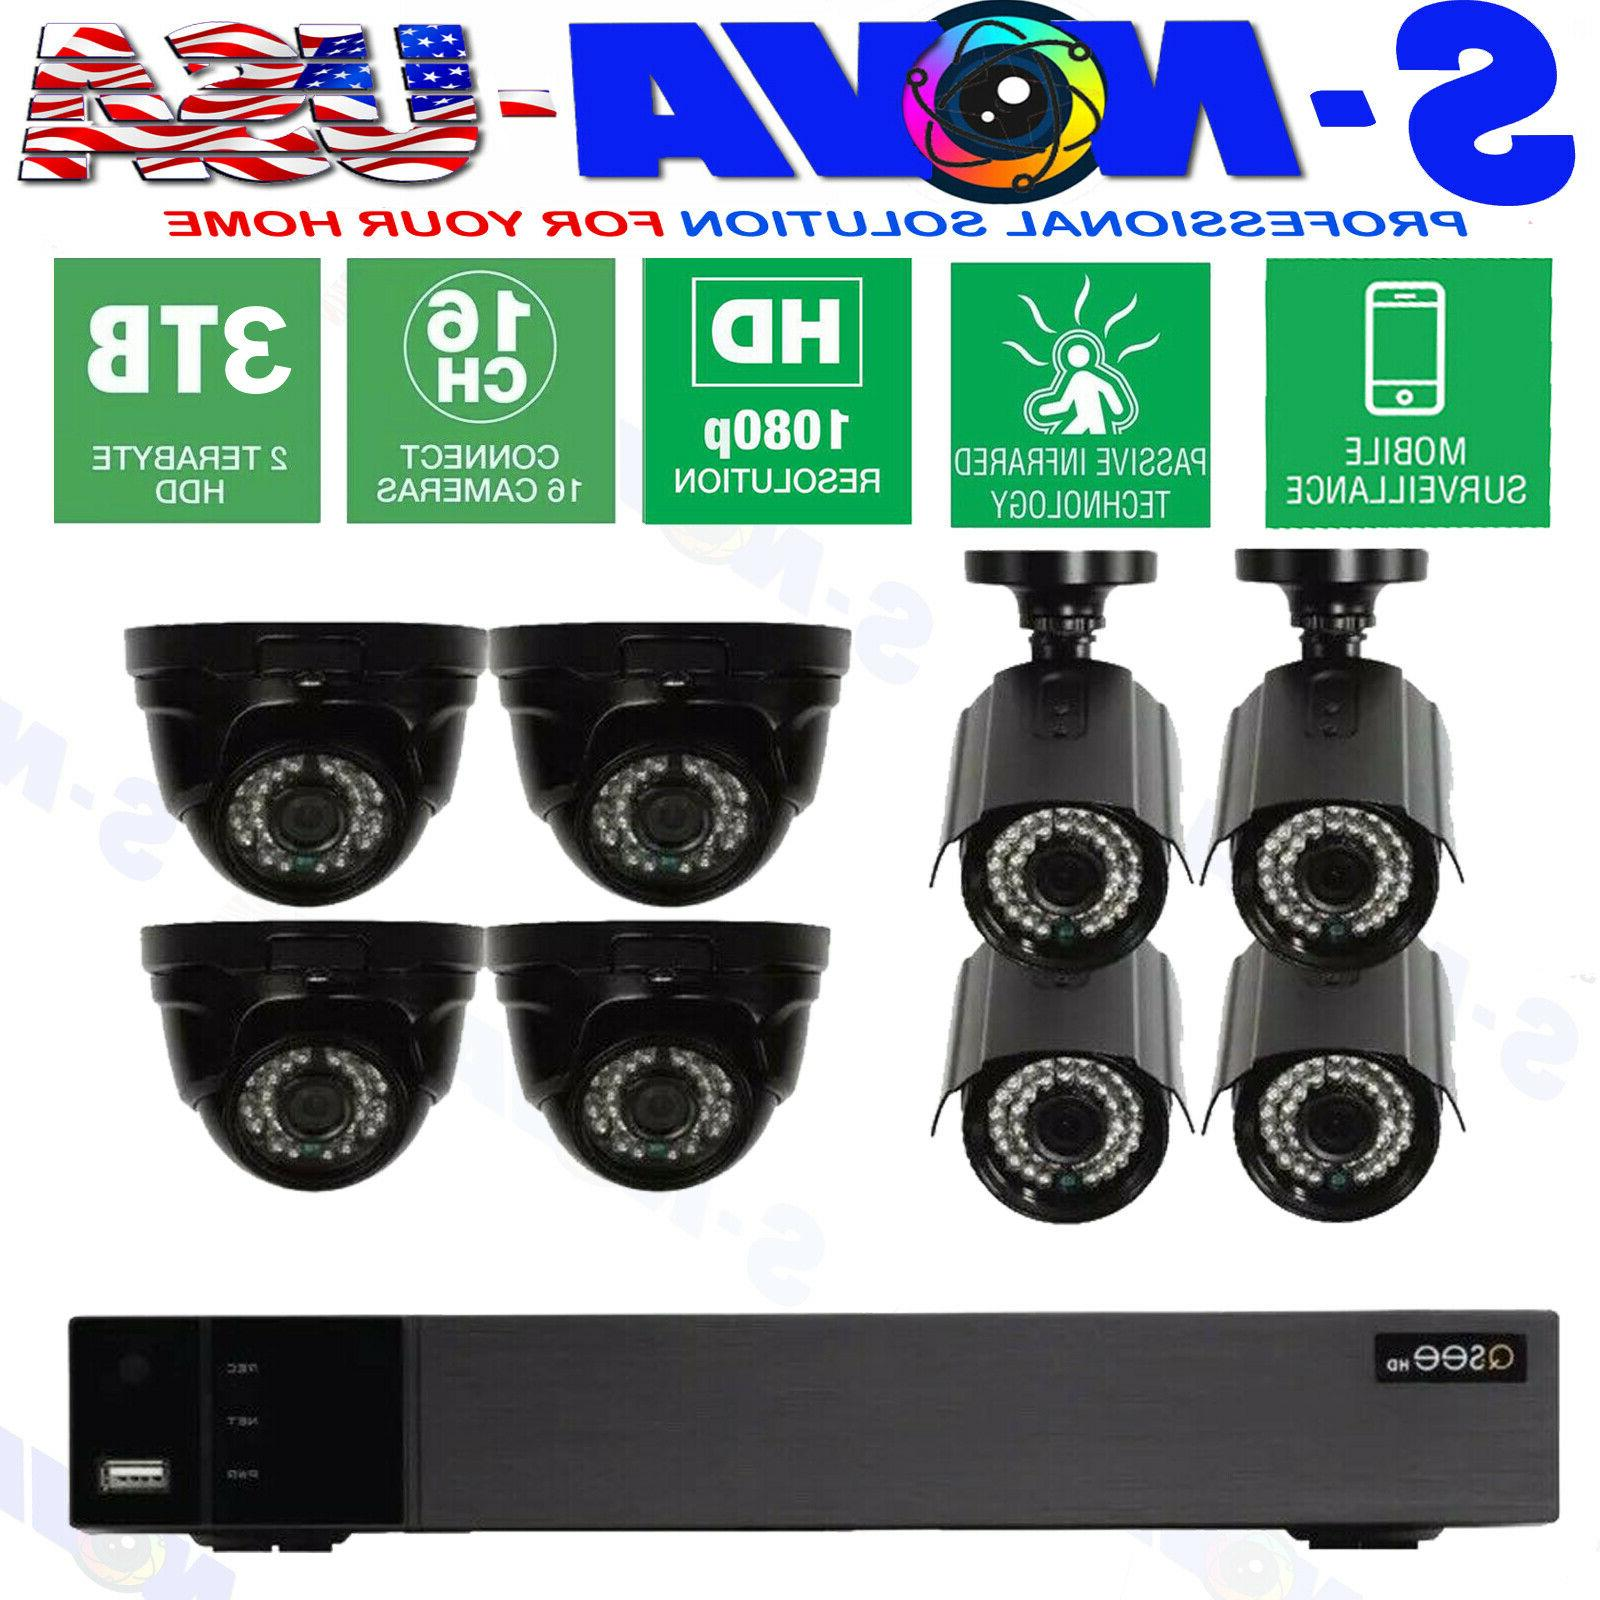 surveillance security camera system16 channel 1080p full